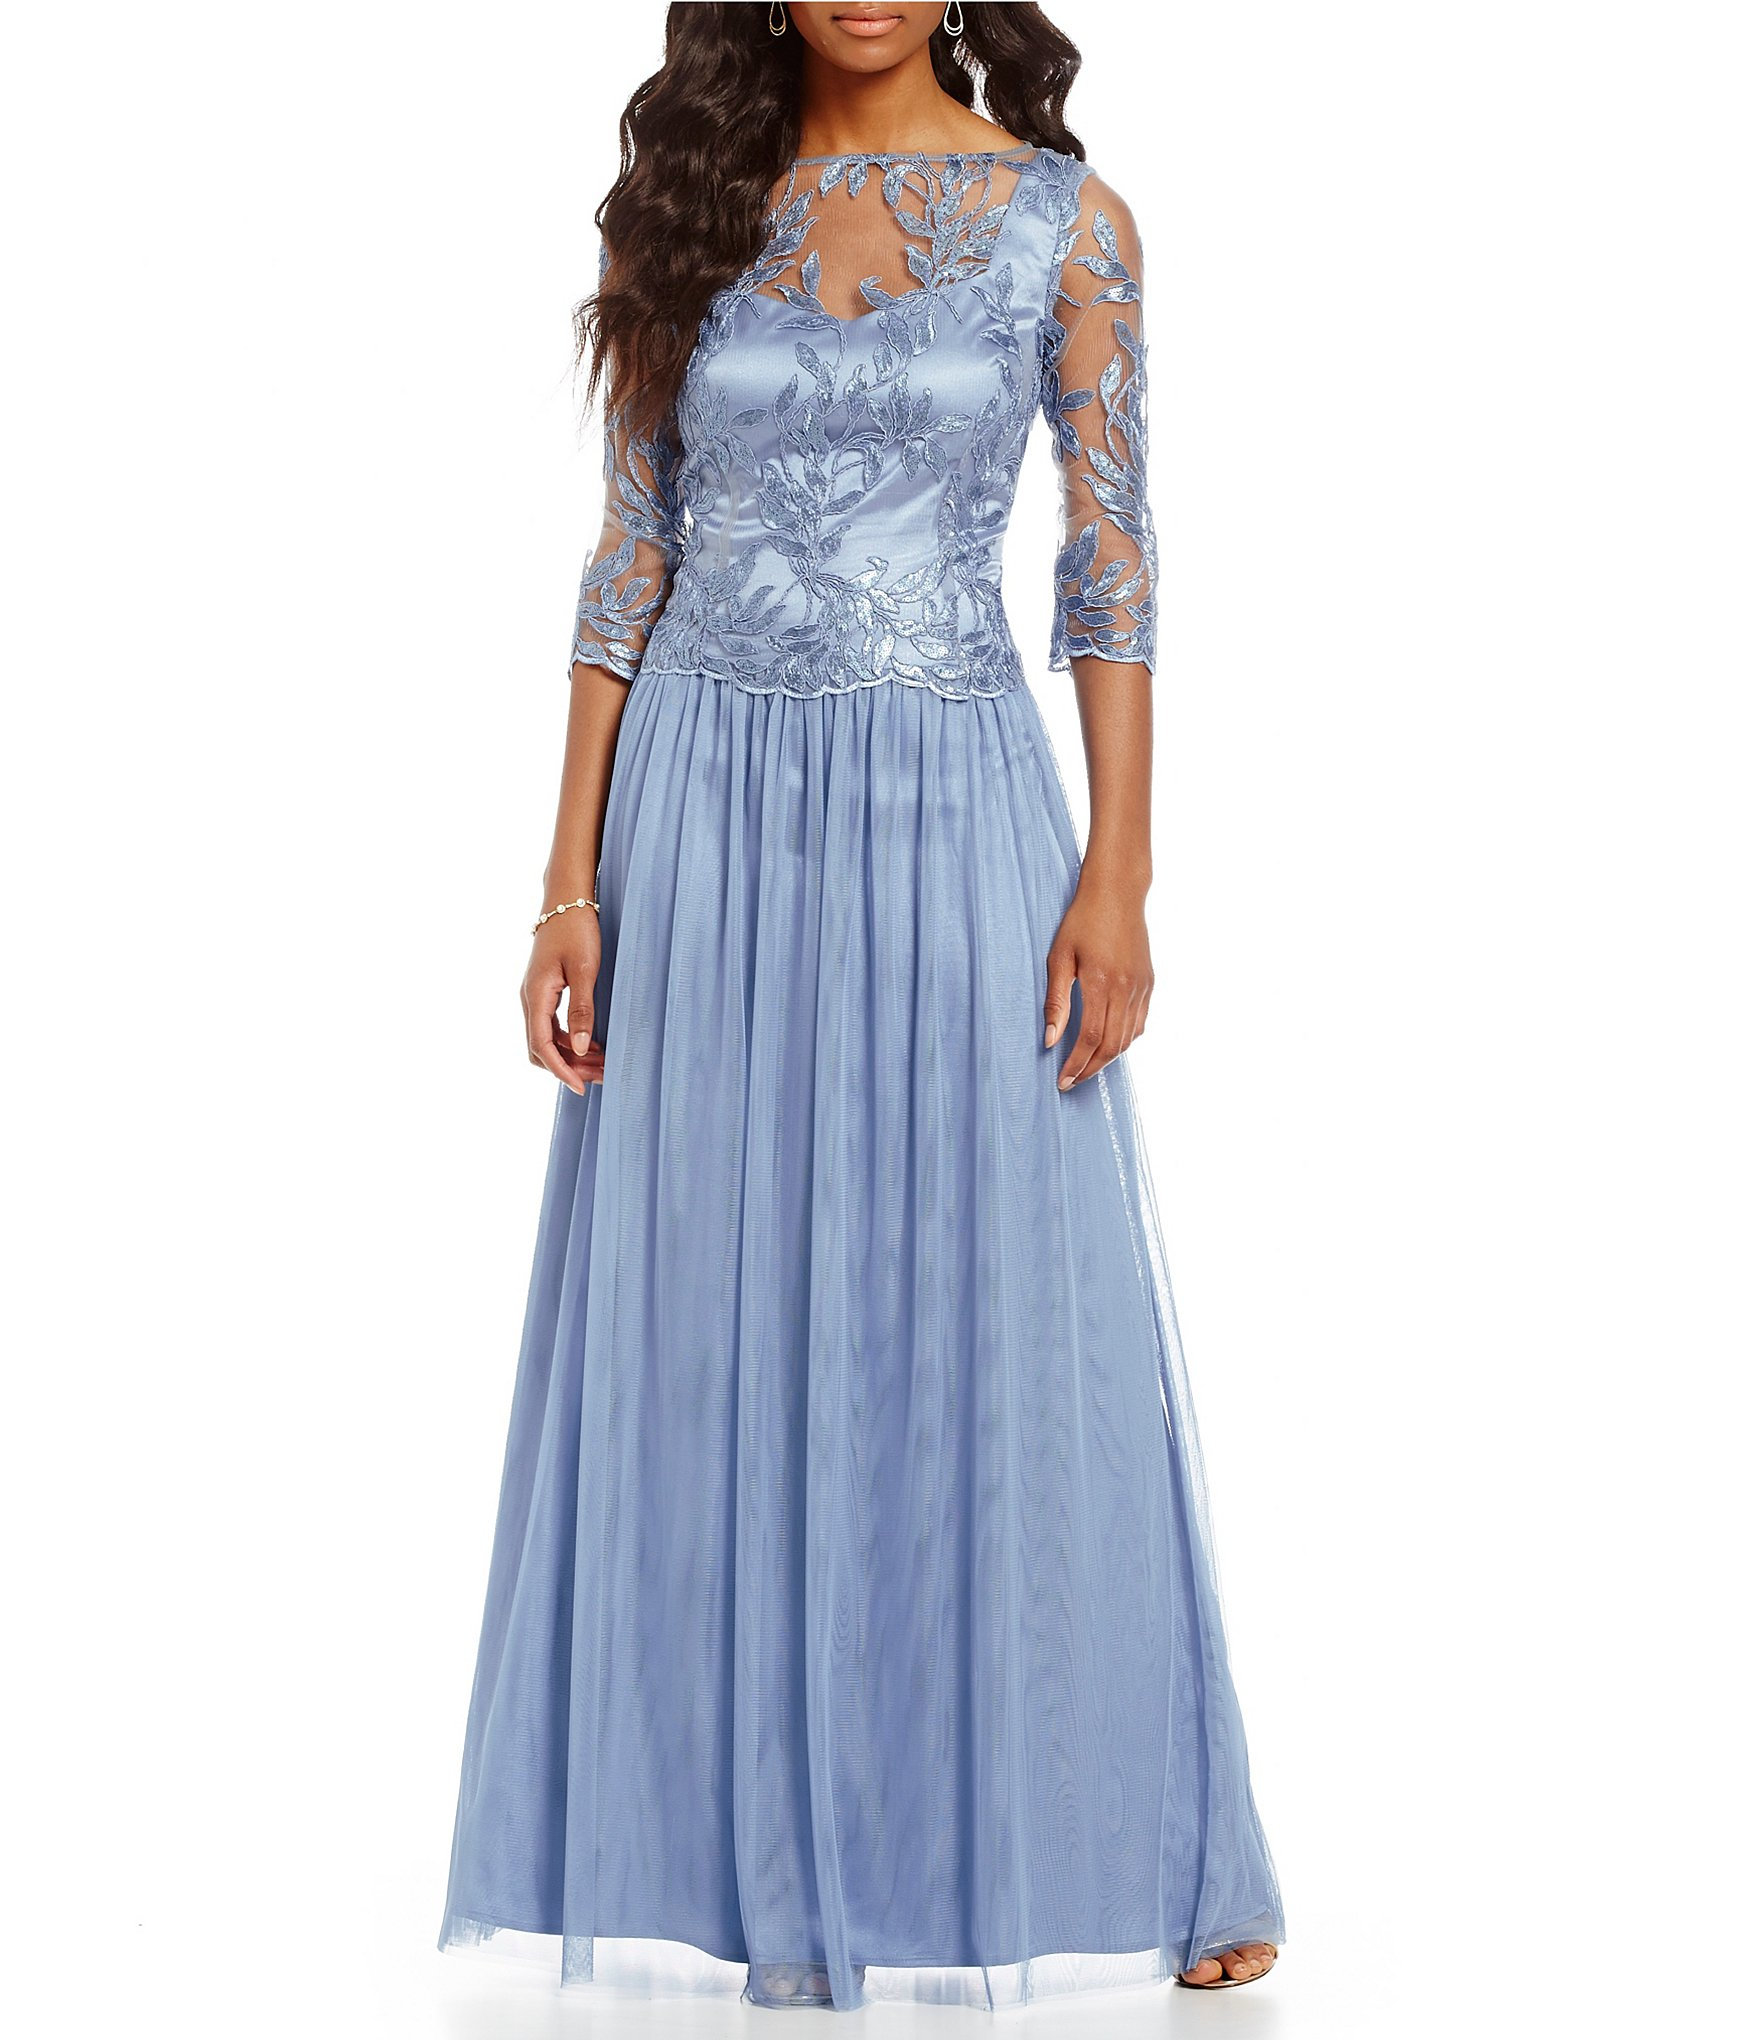 dillards prom dress – fashion dresses